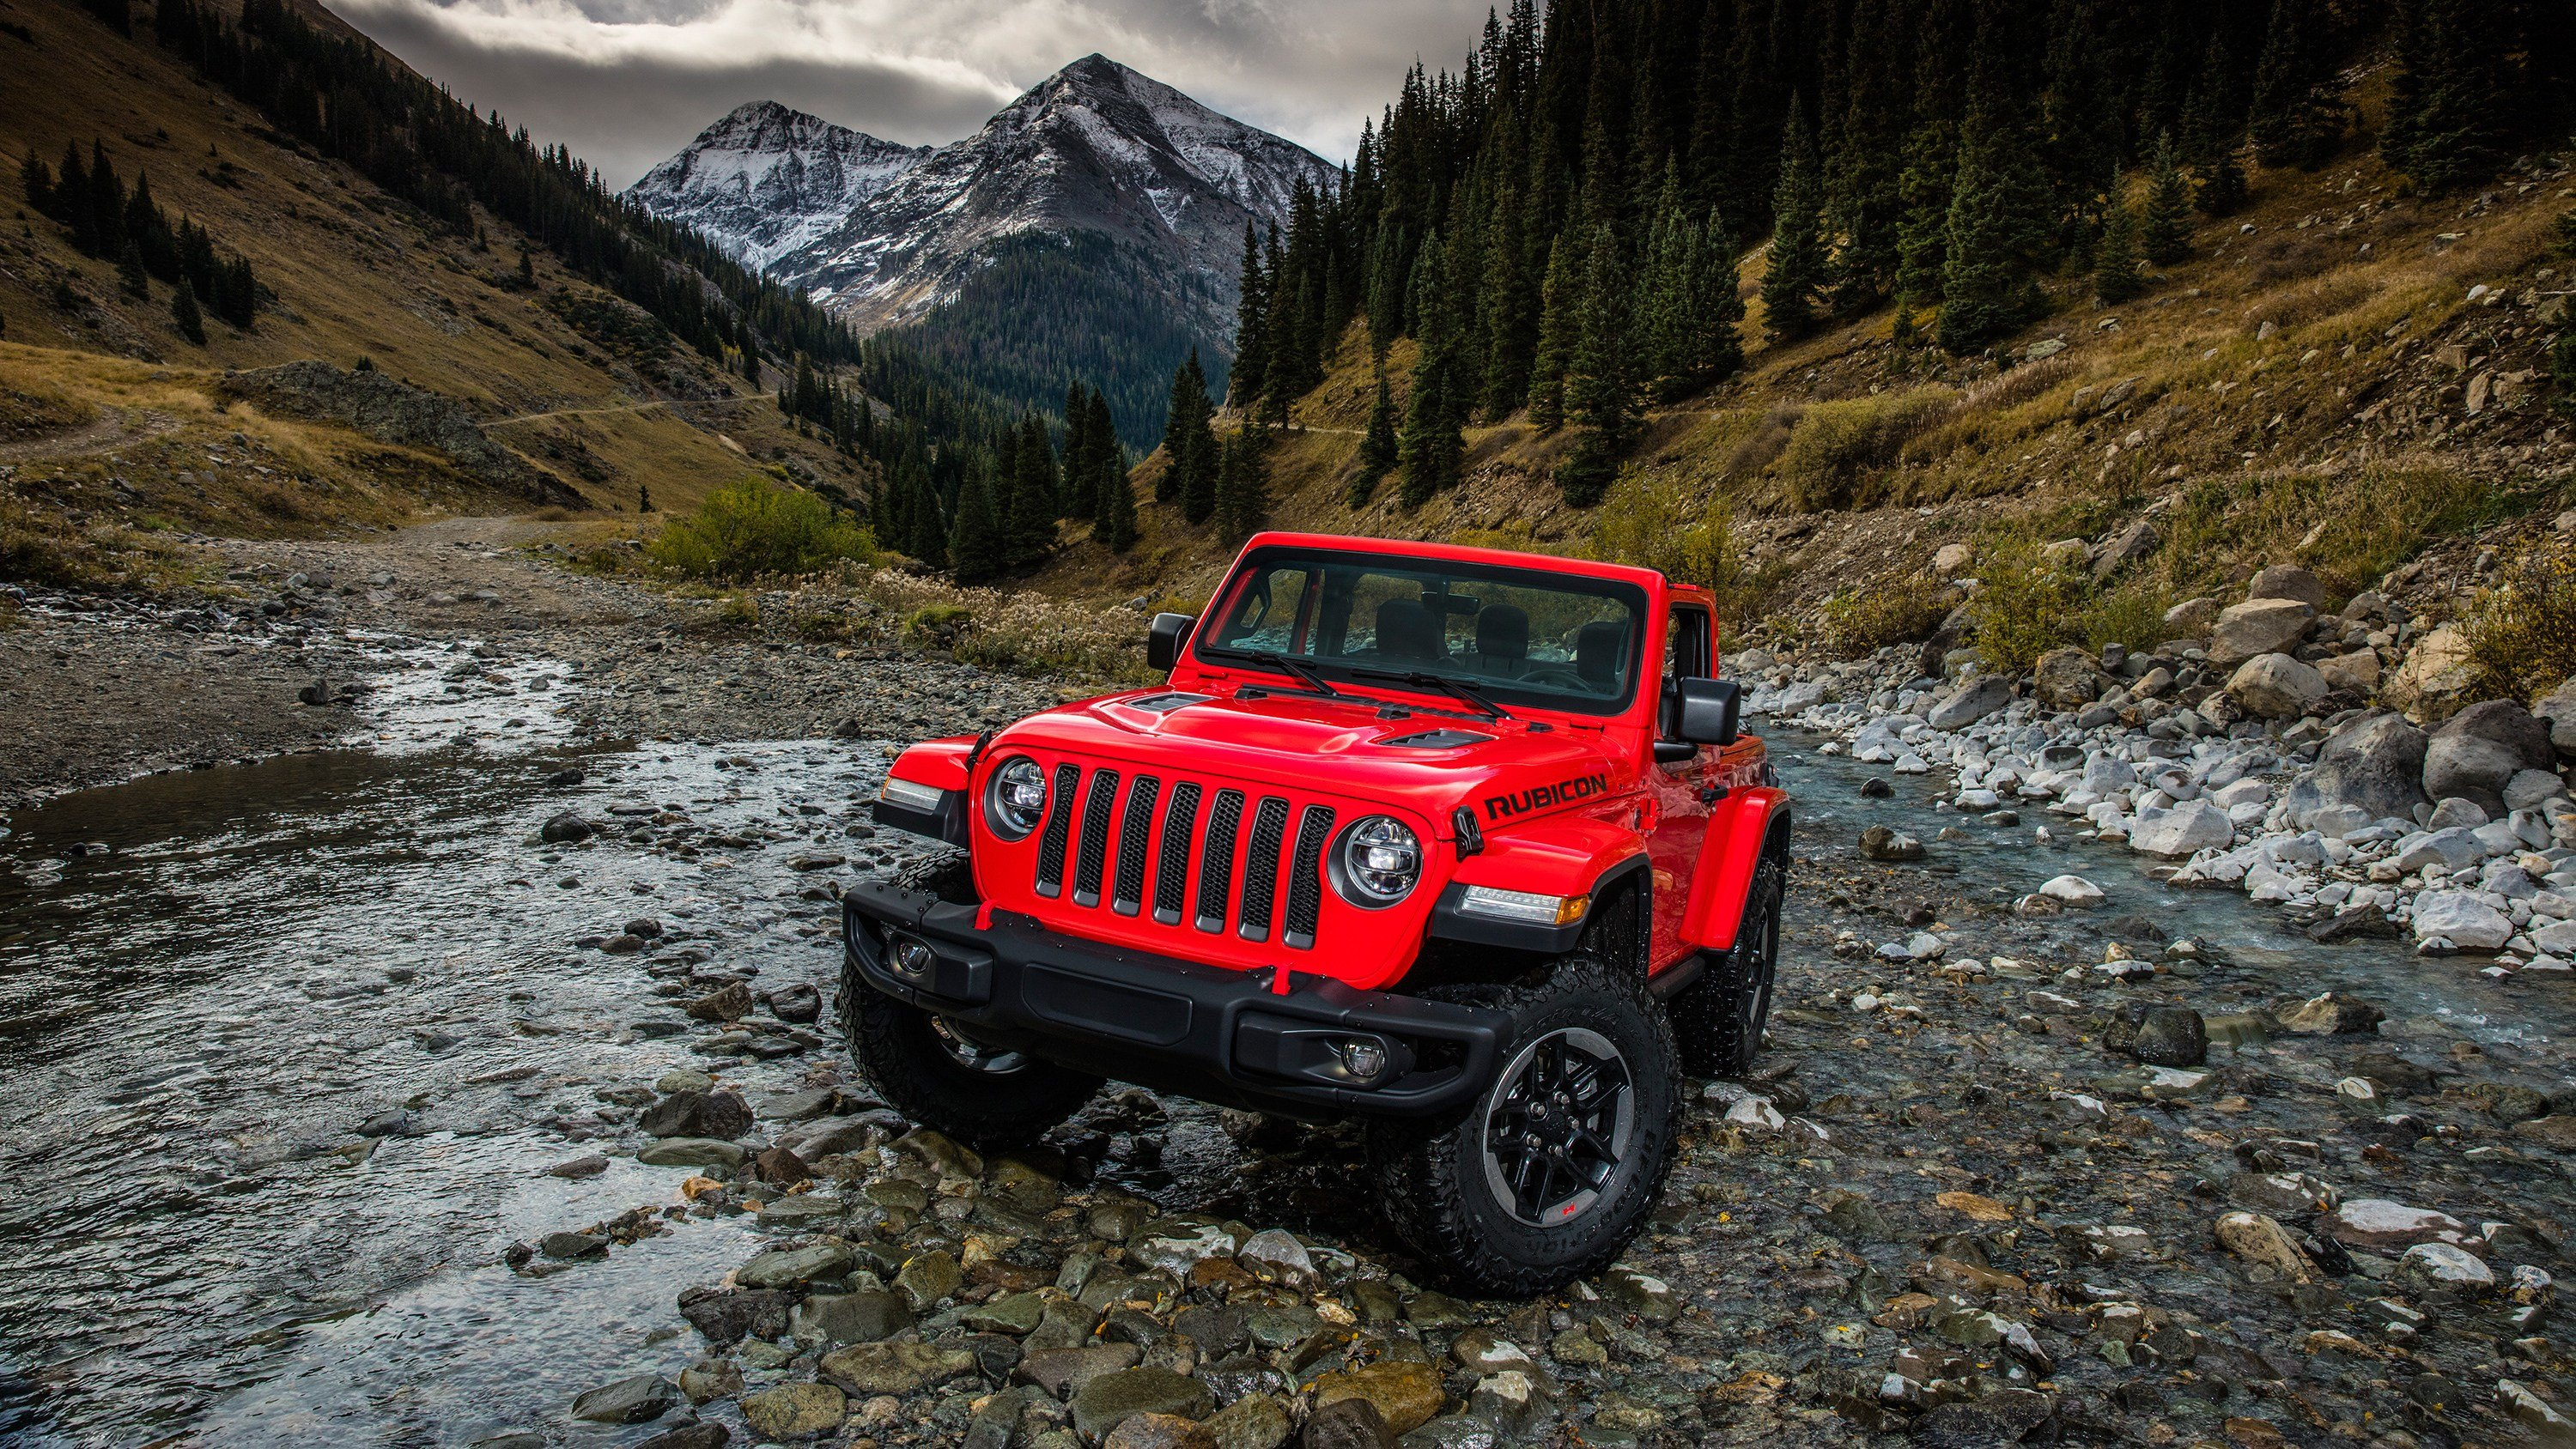 Latest 2018 Jeep Wrangler Rubicon Wallpaper Hd Car Wallpapers Free Download